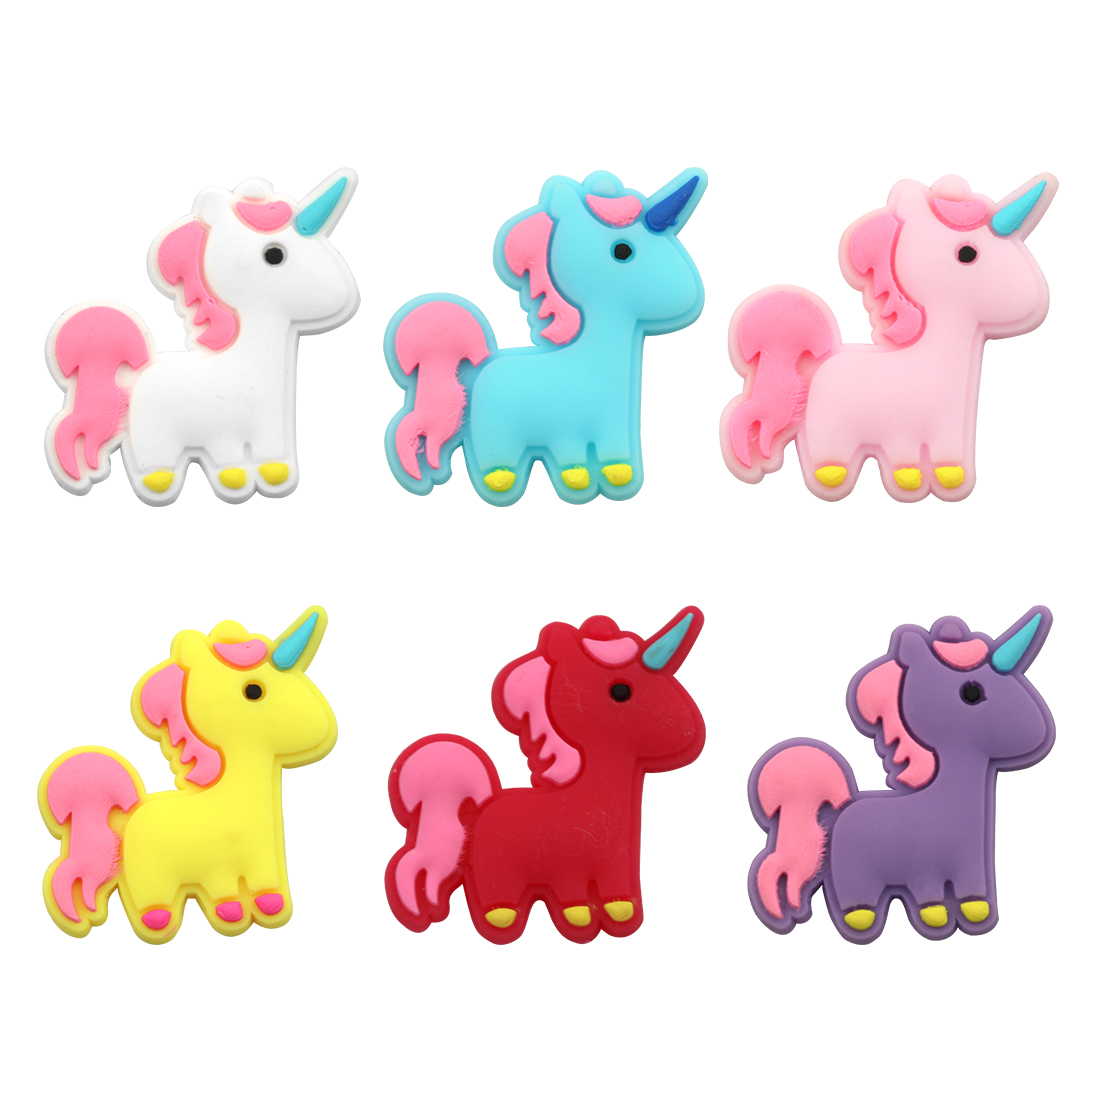 10 Pcs/lot Unicorn Pvc Diy Hair Accessories New Design Cute Soft Rubber Animal Pattern Bright Color Children Handmade Hair Claws Exquisite Traditional Embroidery Art